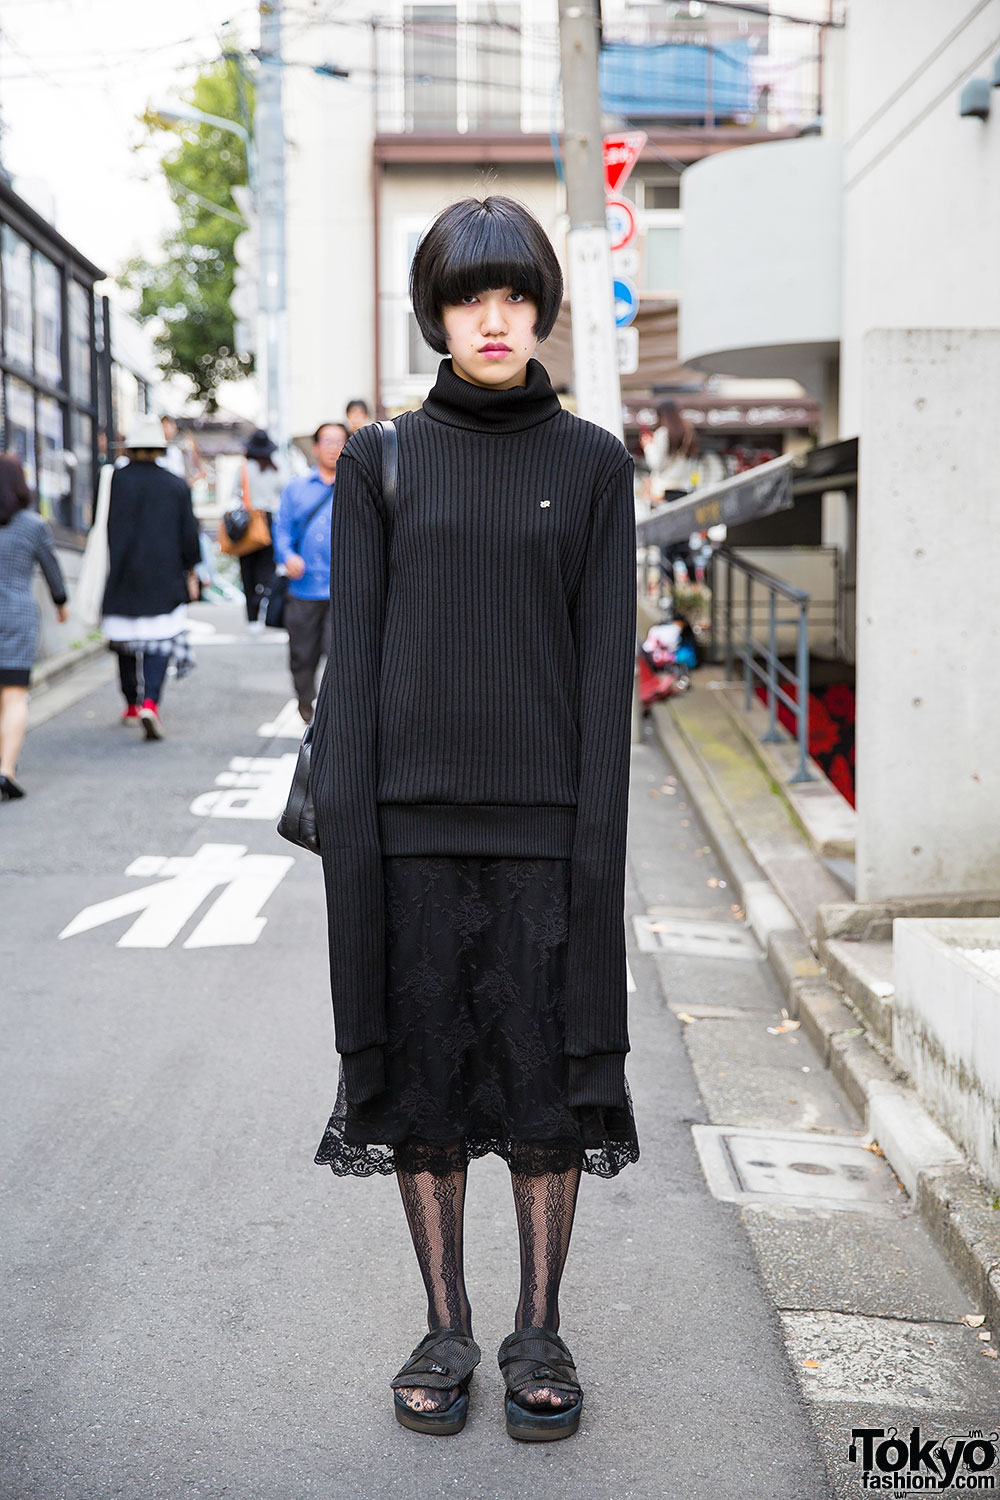 Harajuku Girl in All Black w/ Extra Long Sleeve 99% IS Turtleneck ...